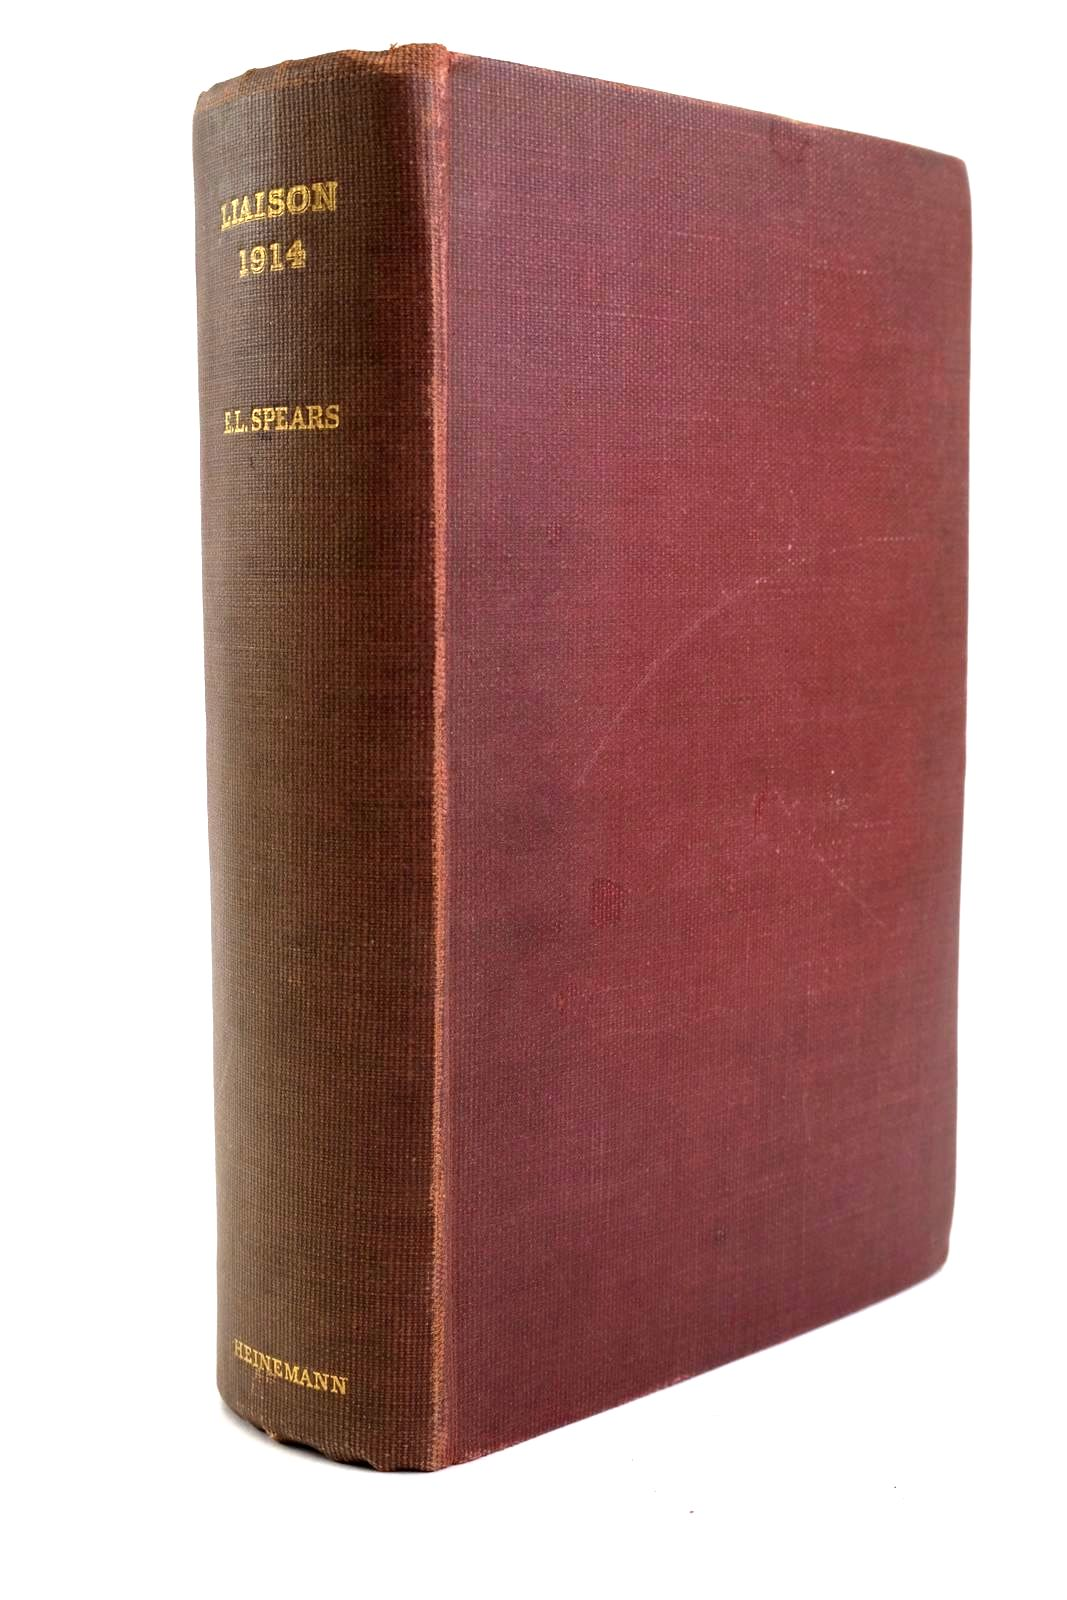 Photo of LIAISON 1914 A NARRATIVE OF THE GREAT RETREAT written by Spears, Edward published by William Heinemann Ltd. (STOCK CODE: 1320192)  for sale by Stella & Rose's Books